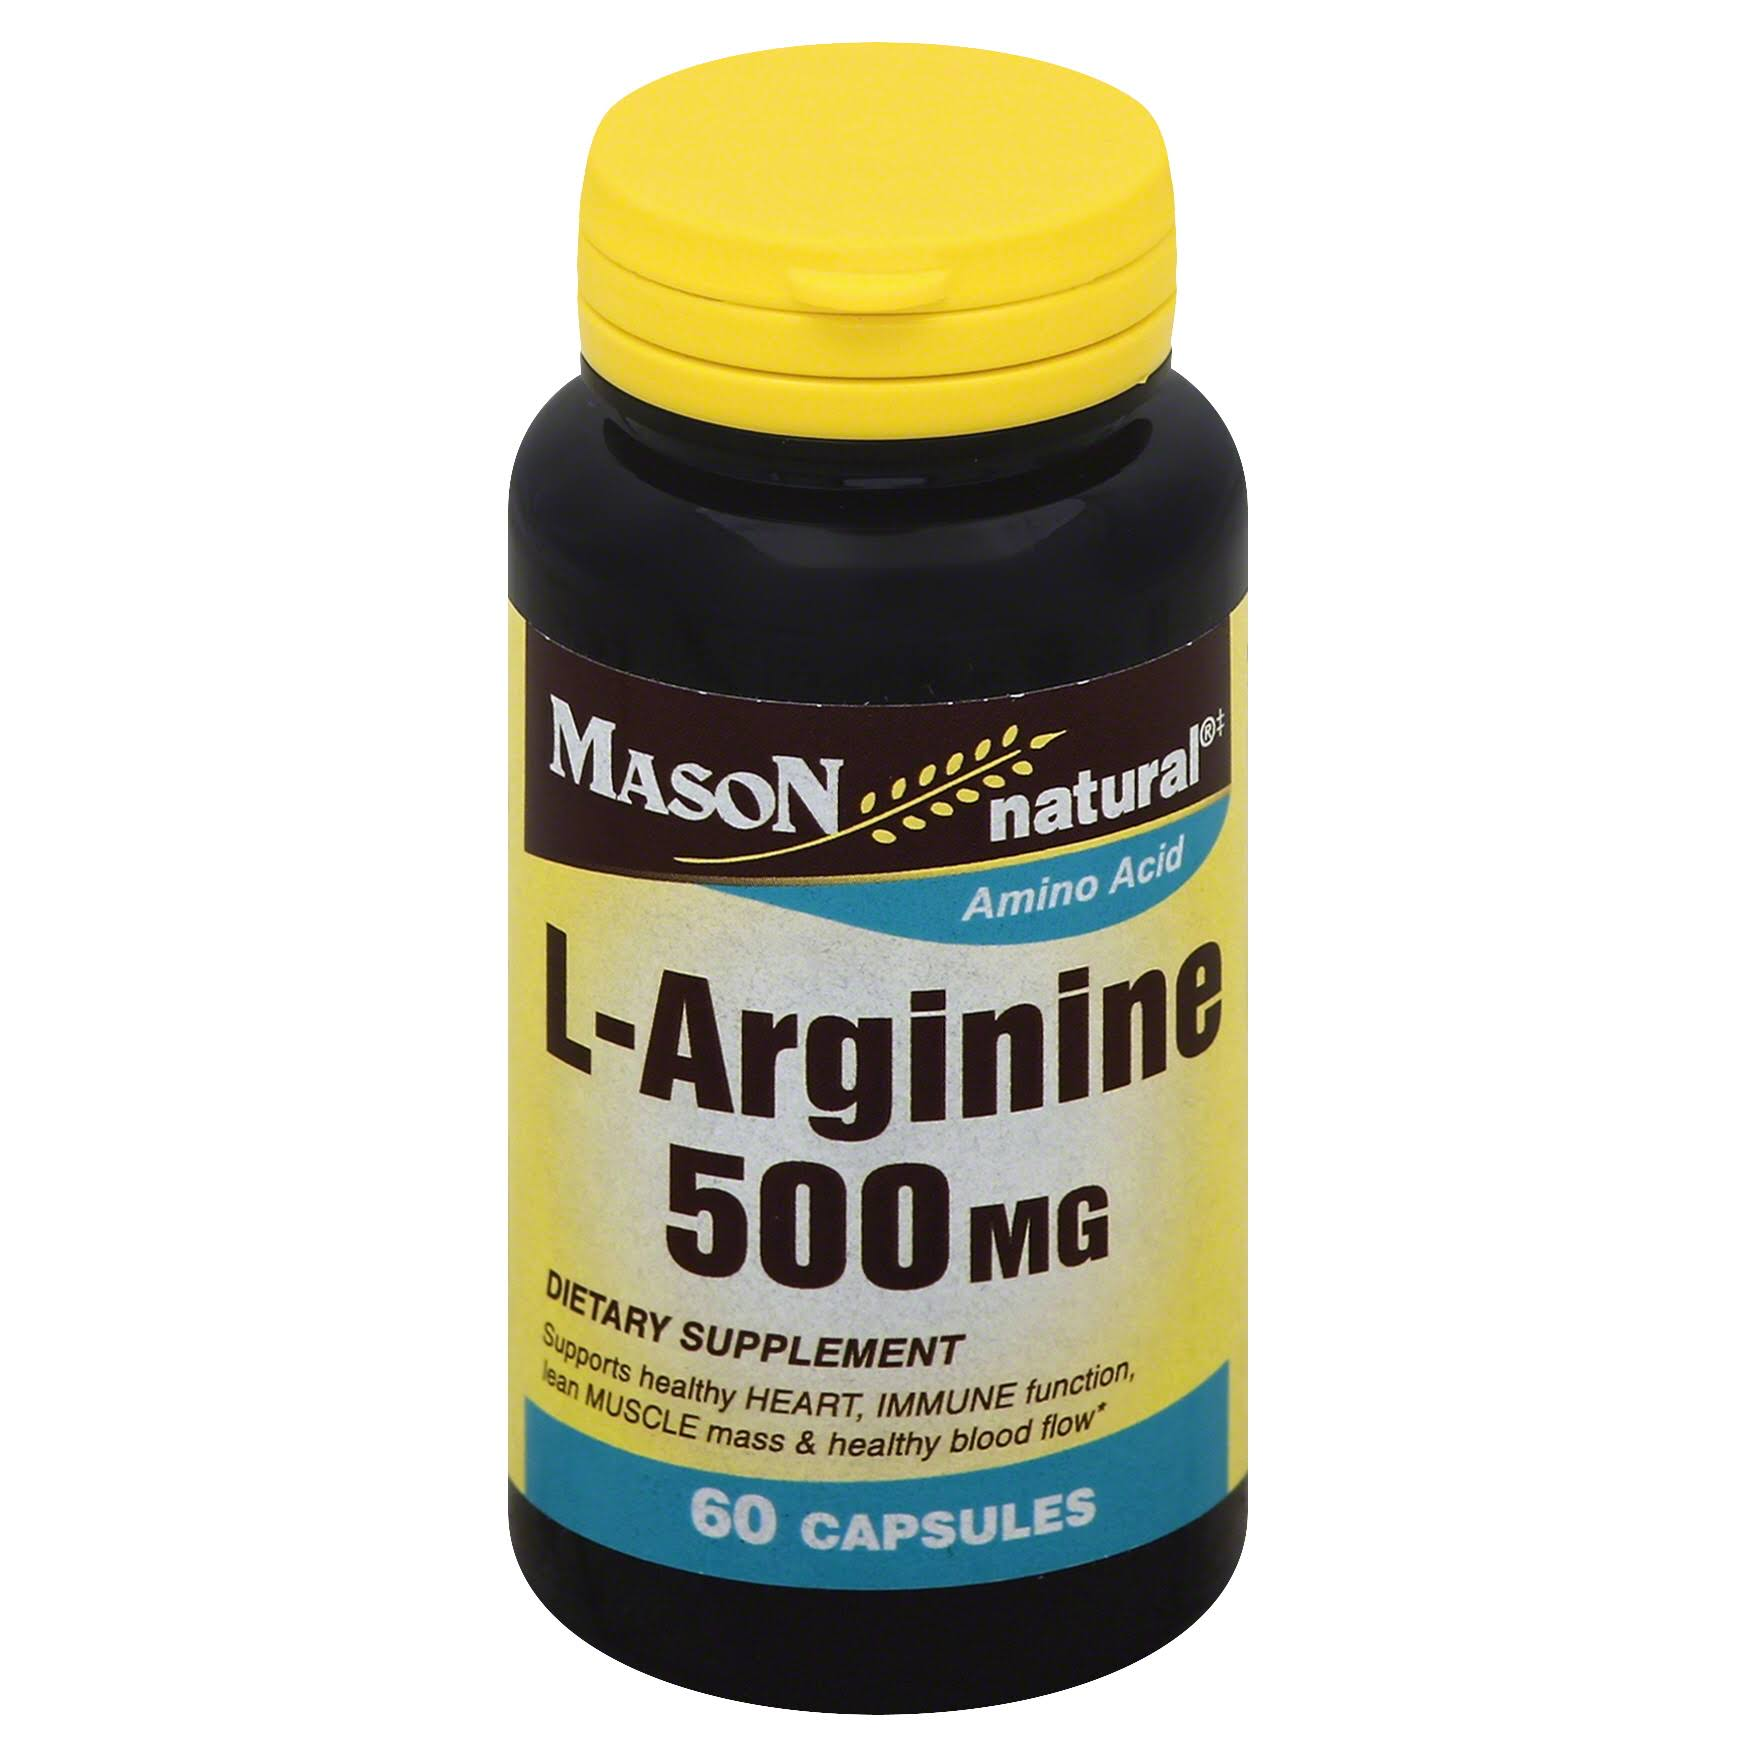 Mason Natural L-Arginine Amino Acid Dietary Supplement - 500mg, 60ct